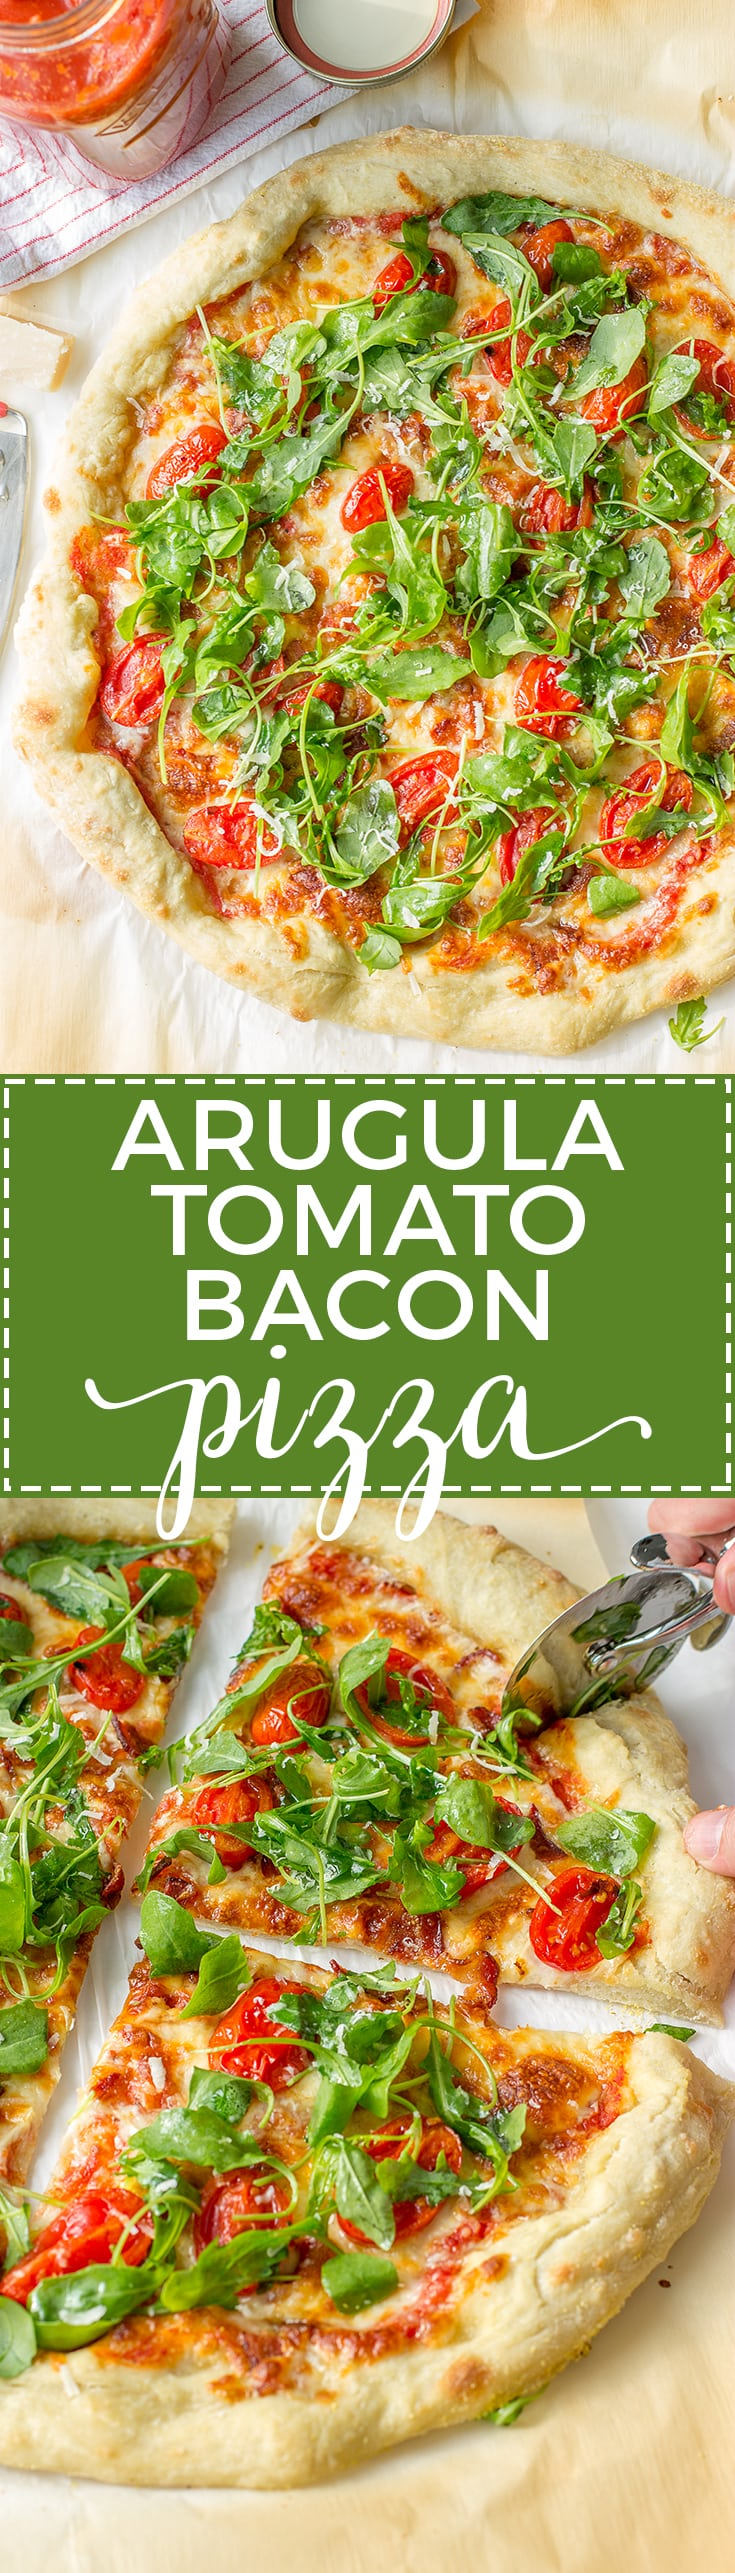 Arugula tomato bacon pizza delivers major flavor and is quick for a weeknight. www.nourish-and-fete.com